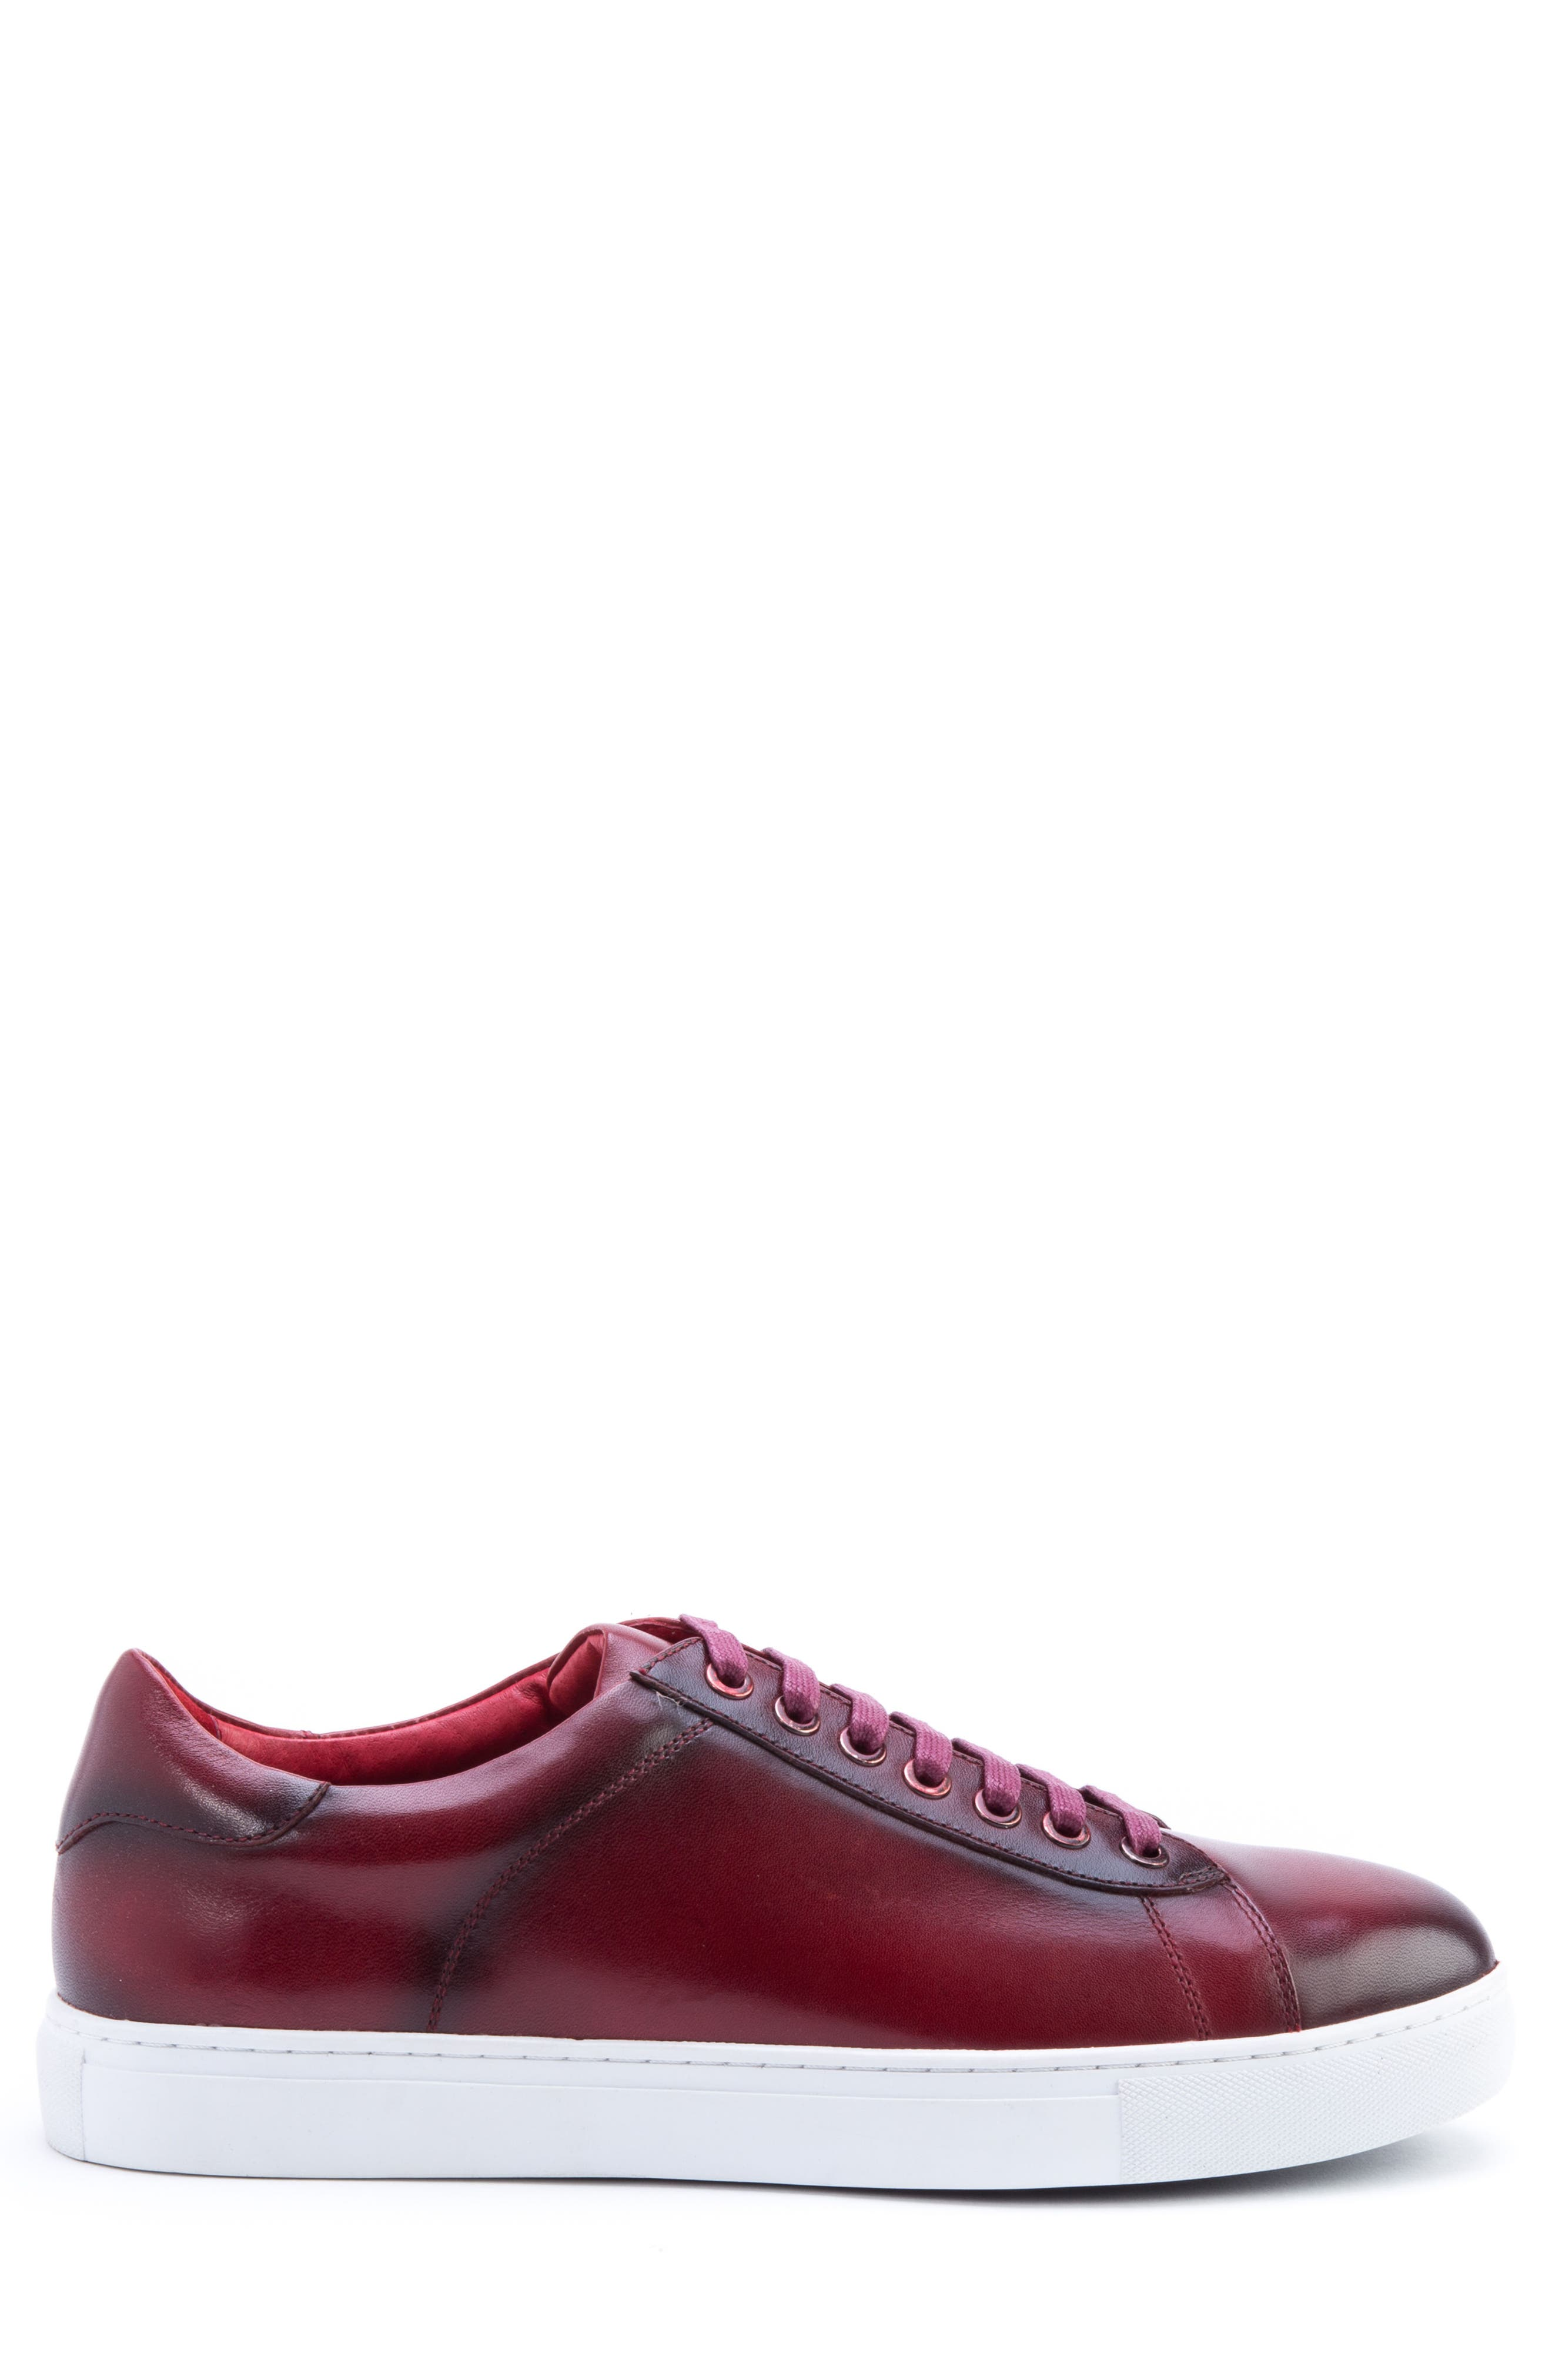 Music Low Top Sneaker,                             Alternate thumbnail 3, color,                             Red Leather